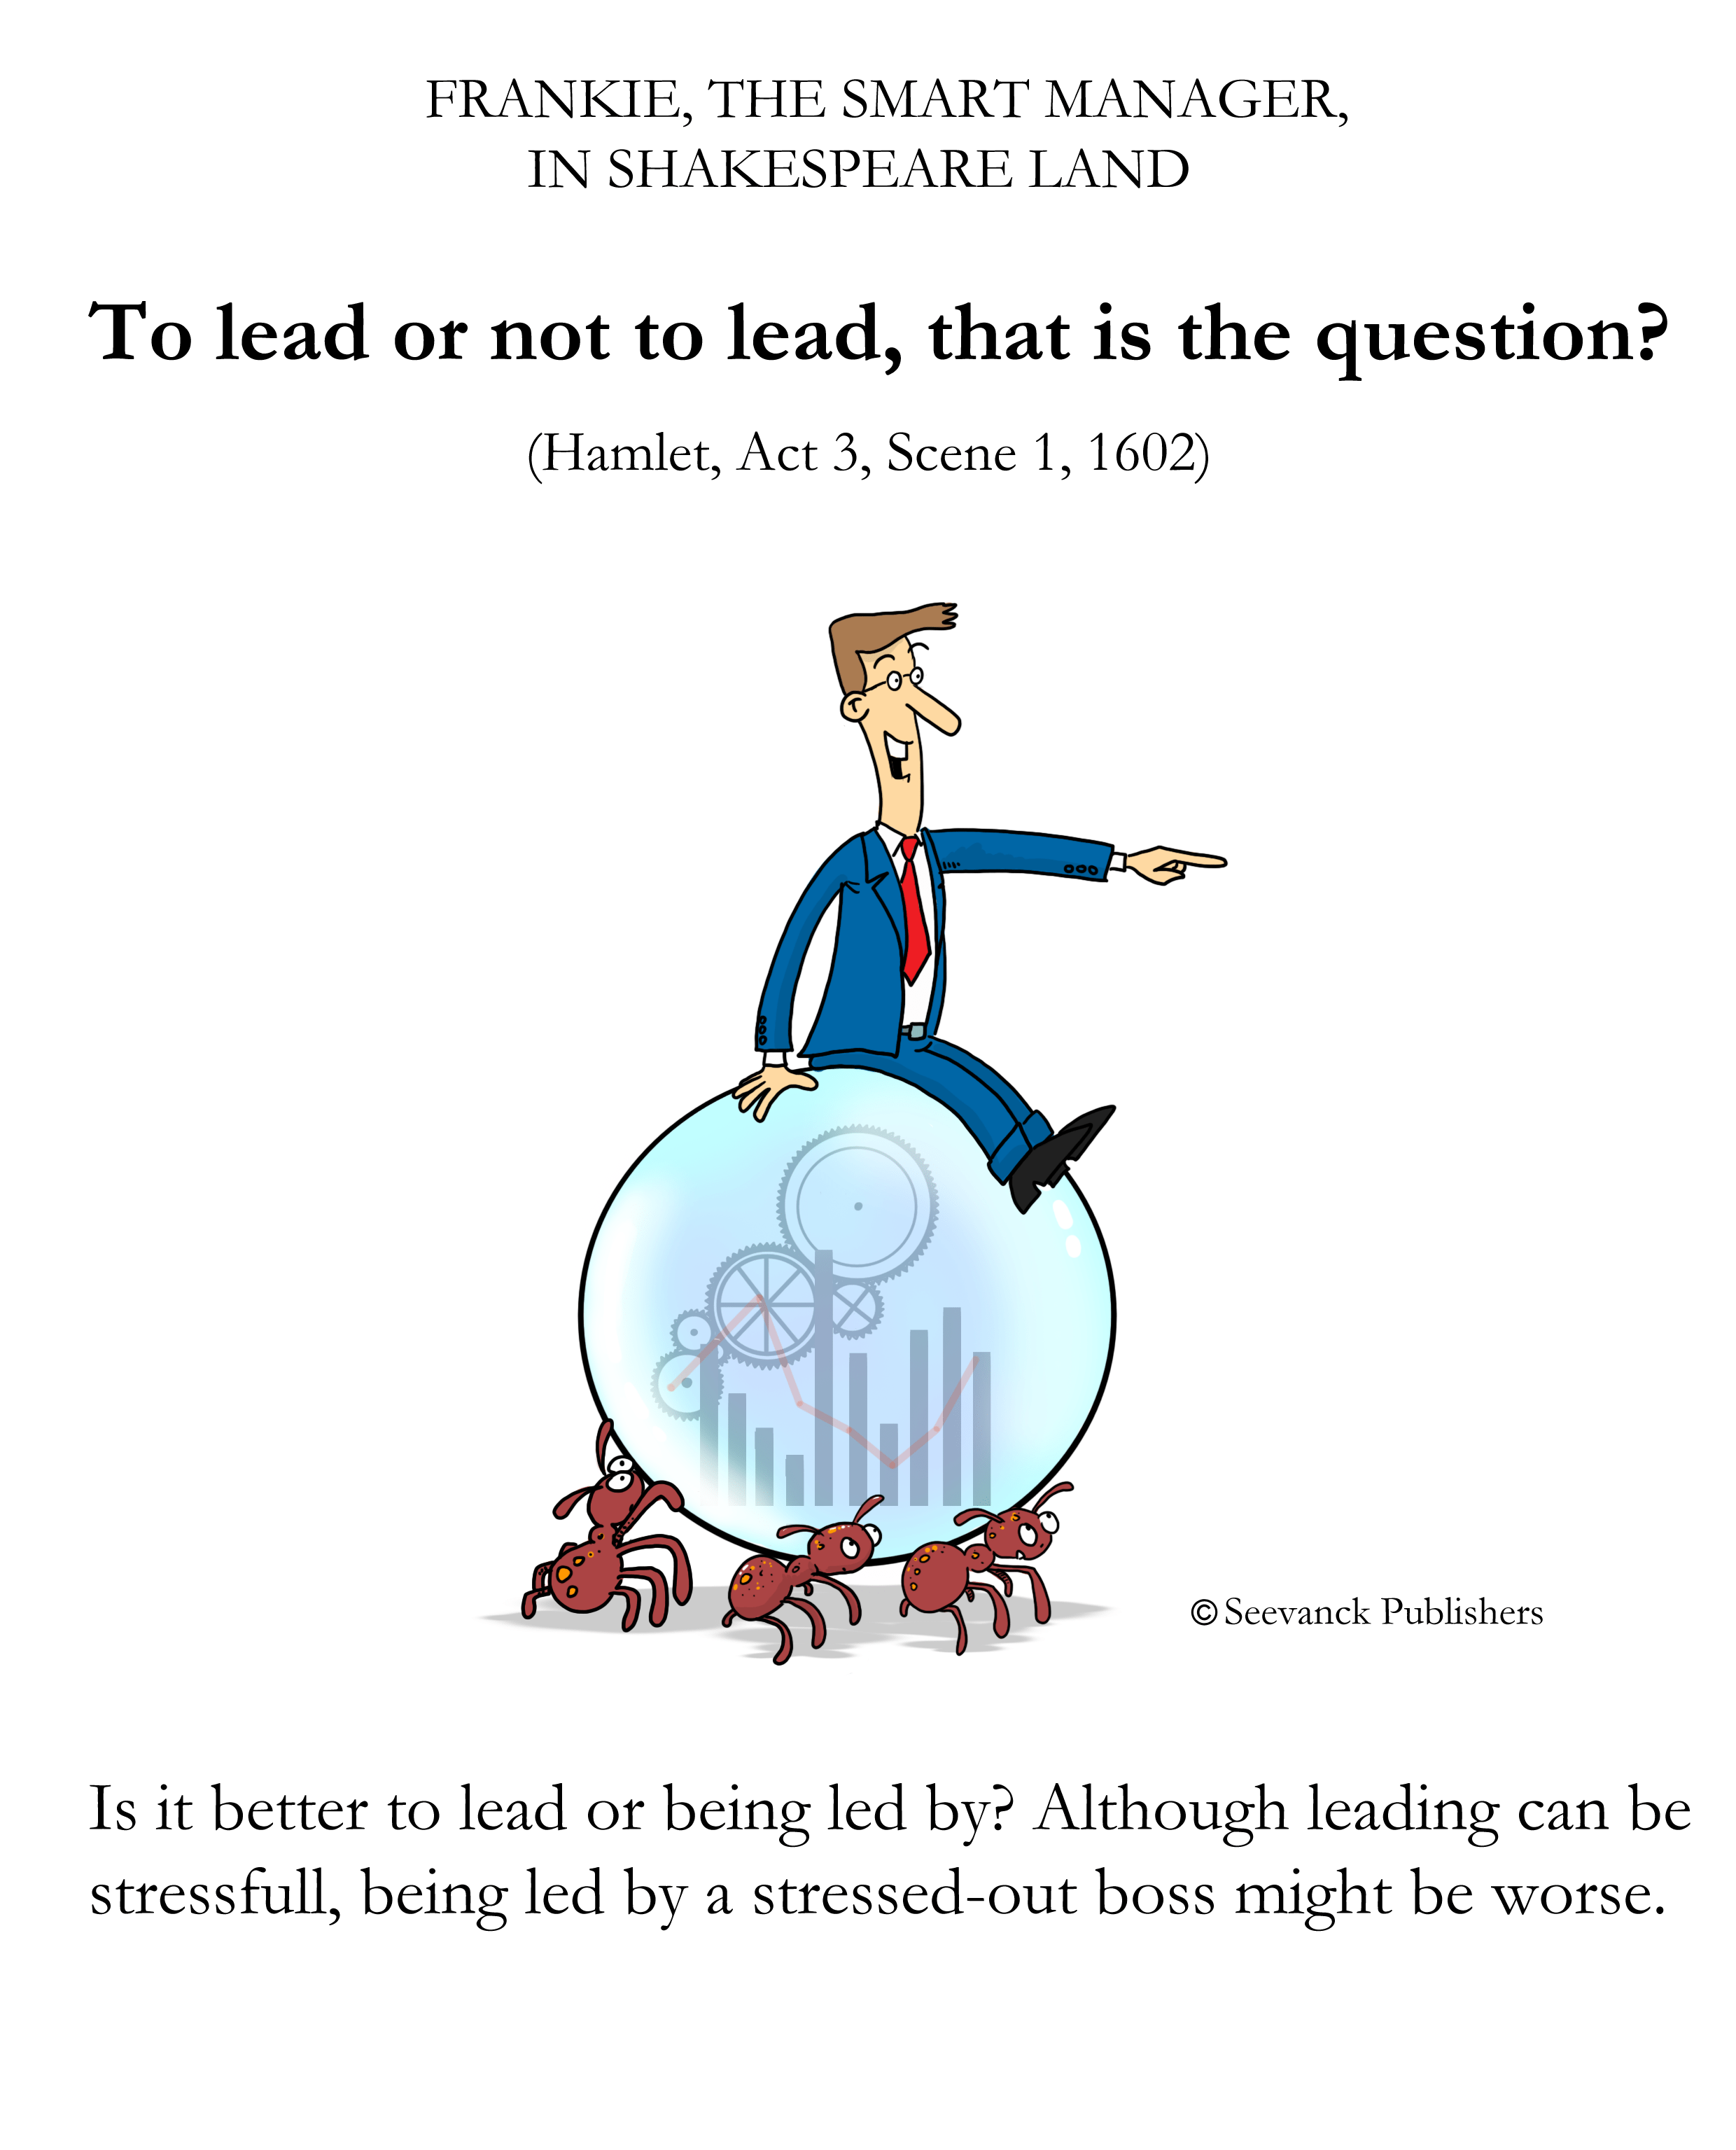 To be or not to be that is the question